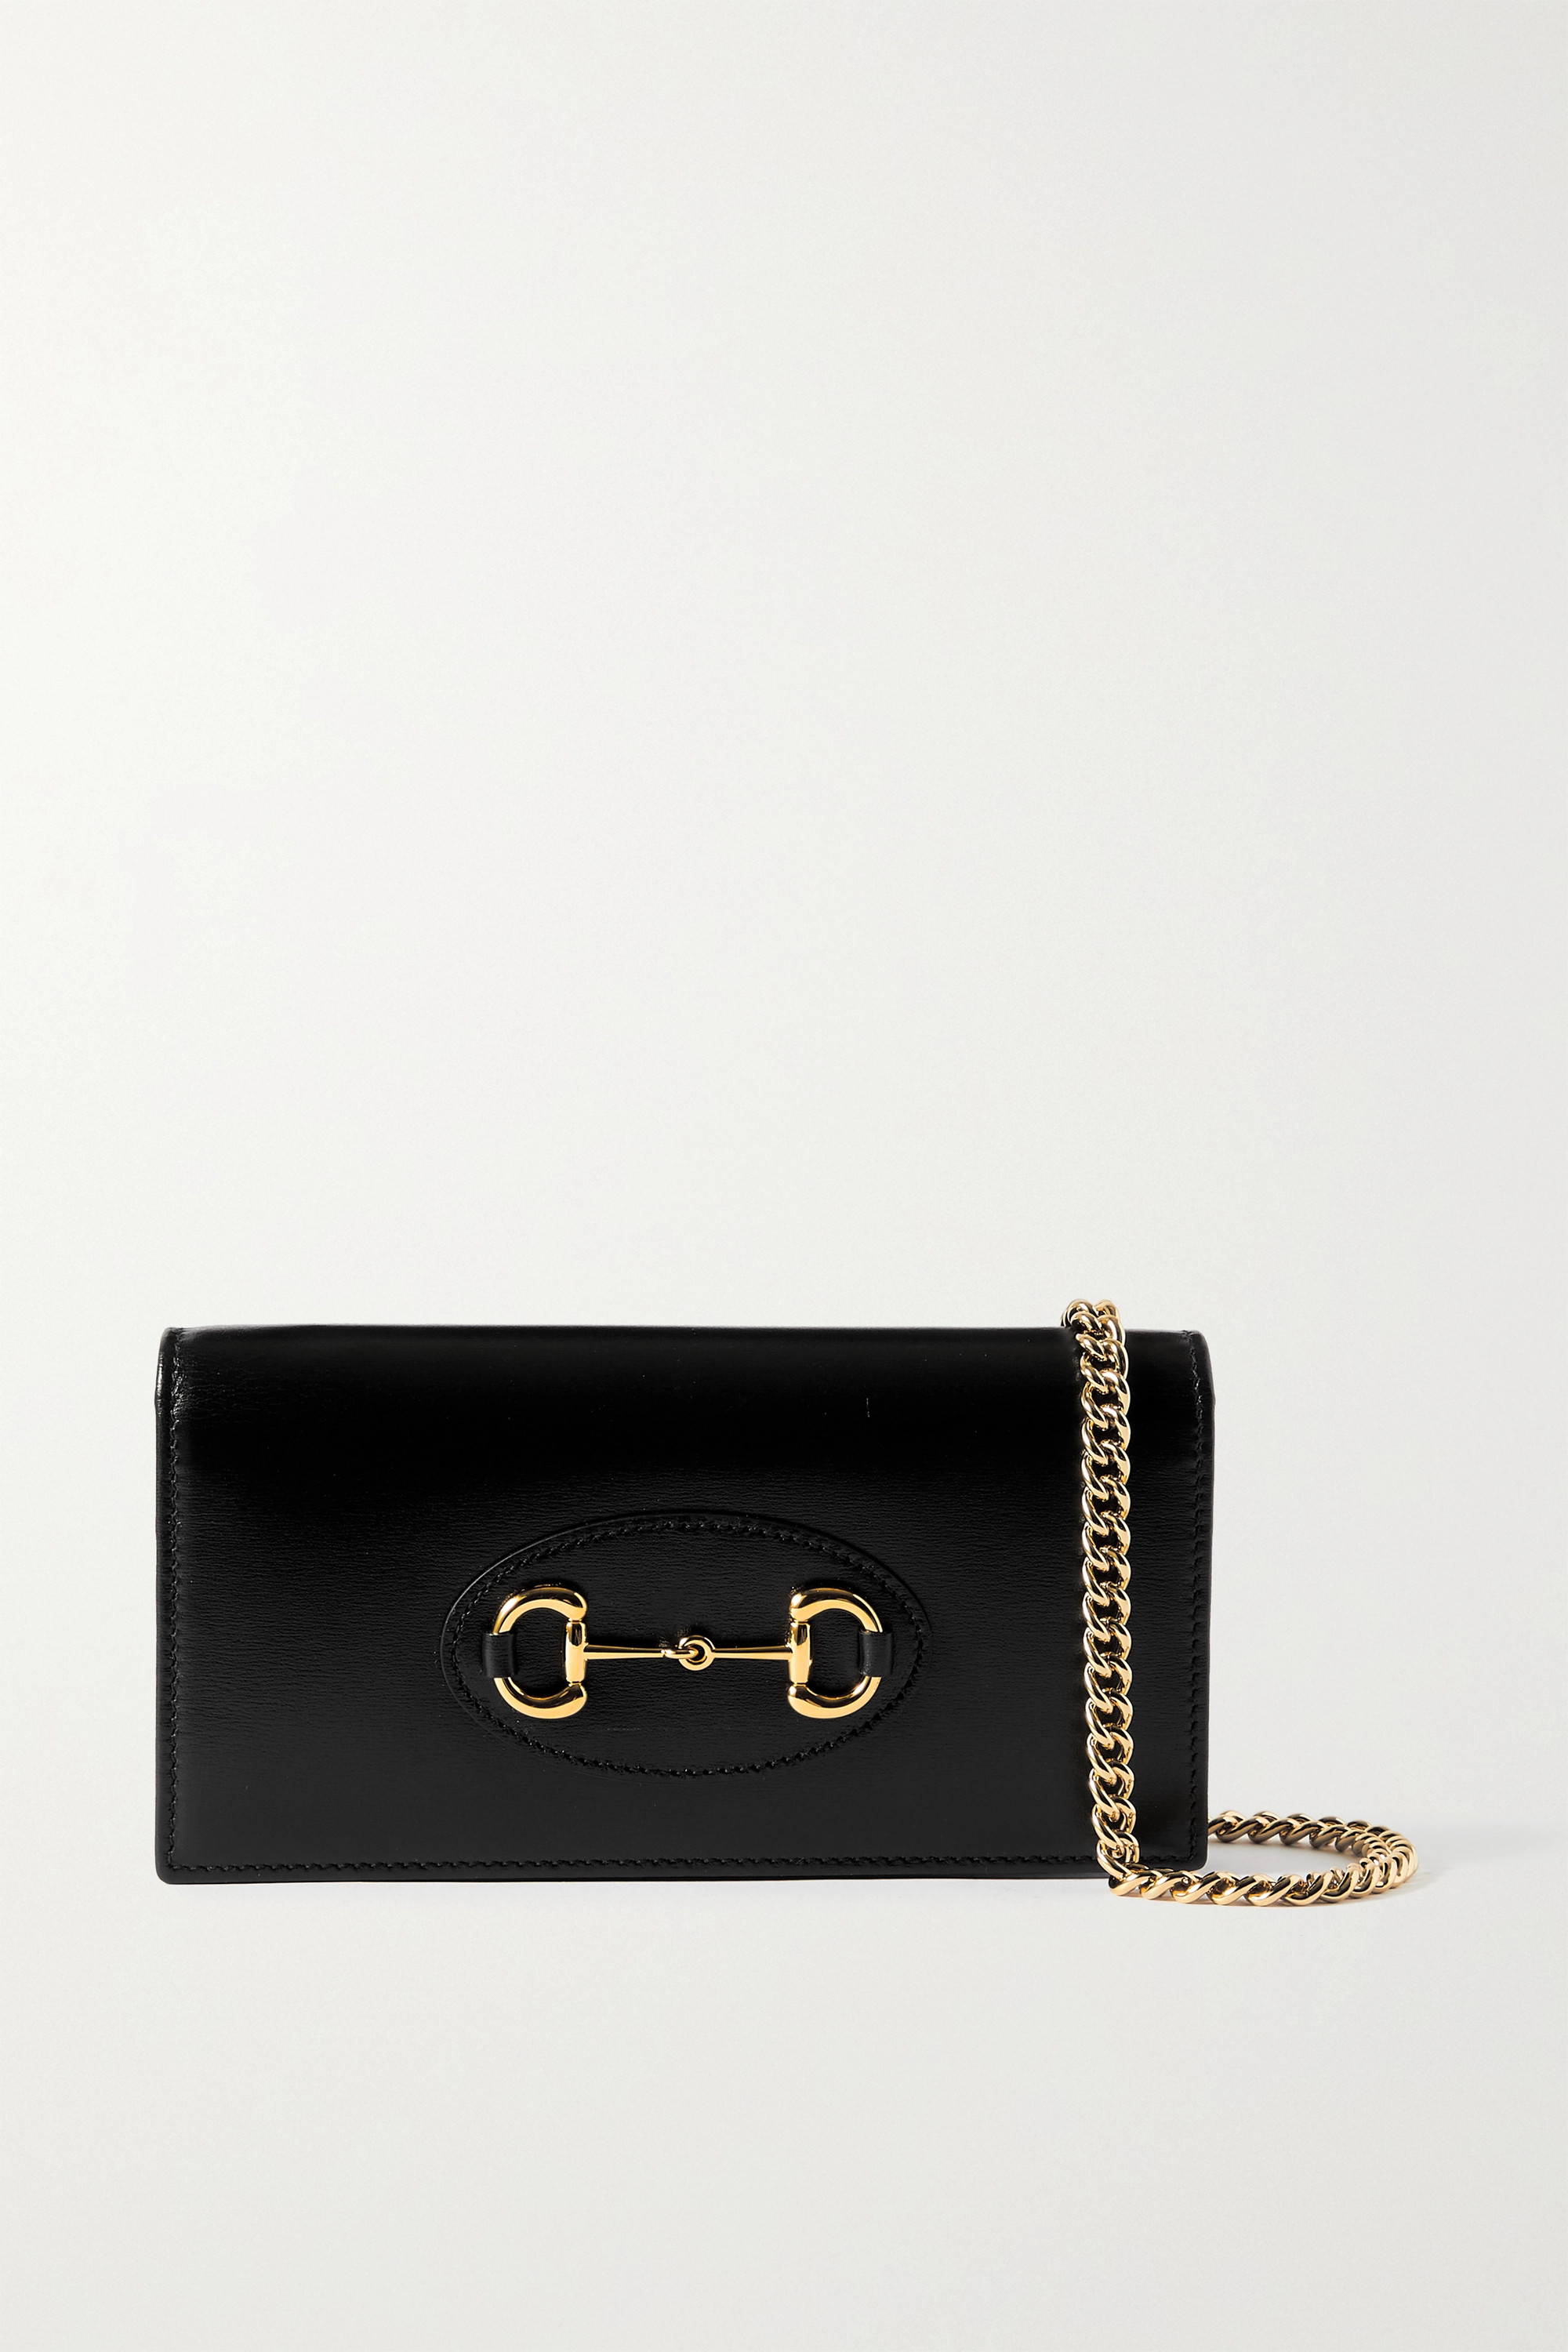 GUCCI 1955 Horsebit leather shoulder bag